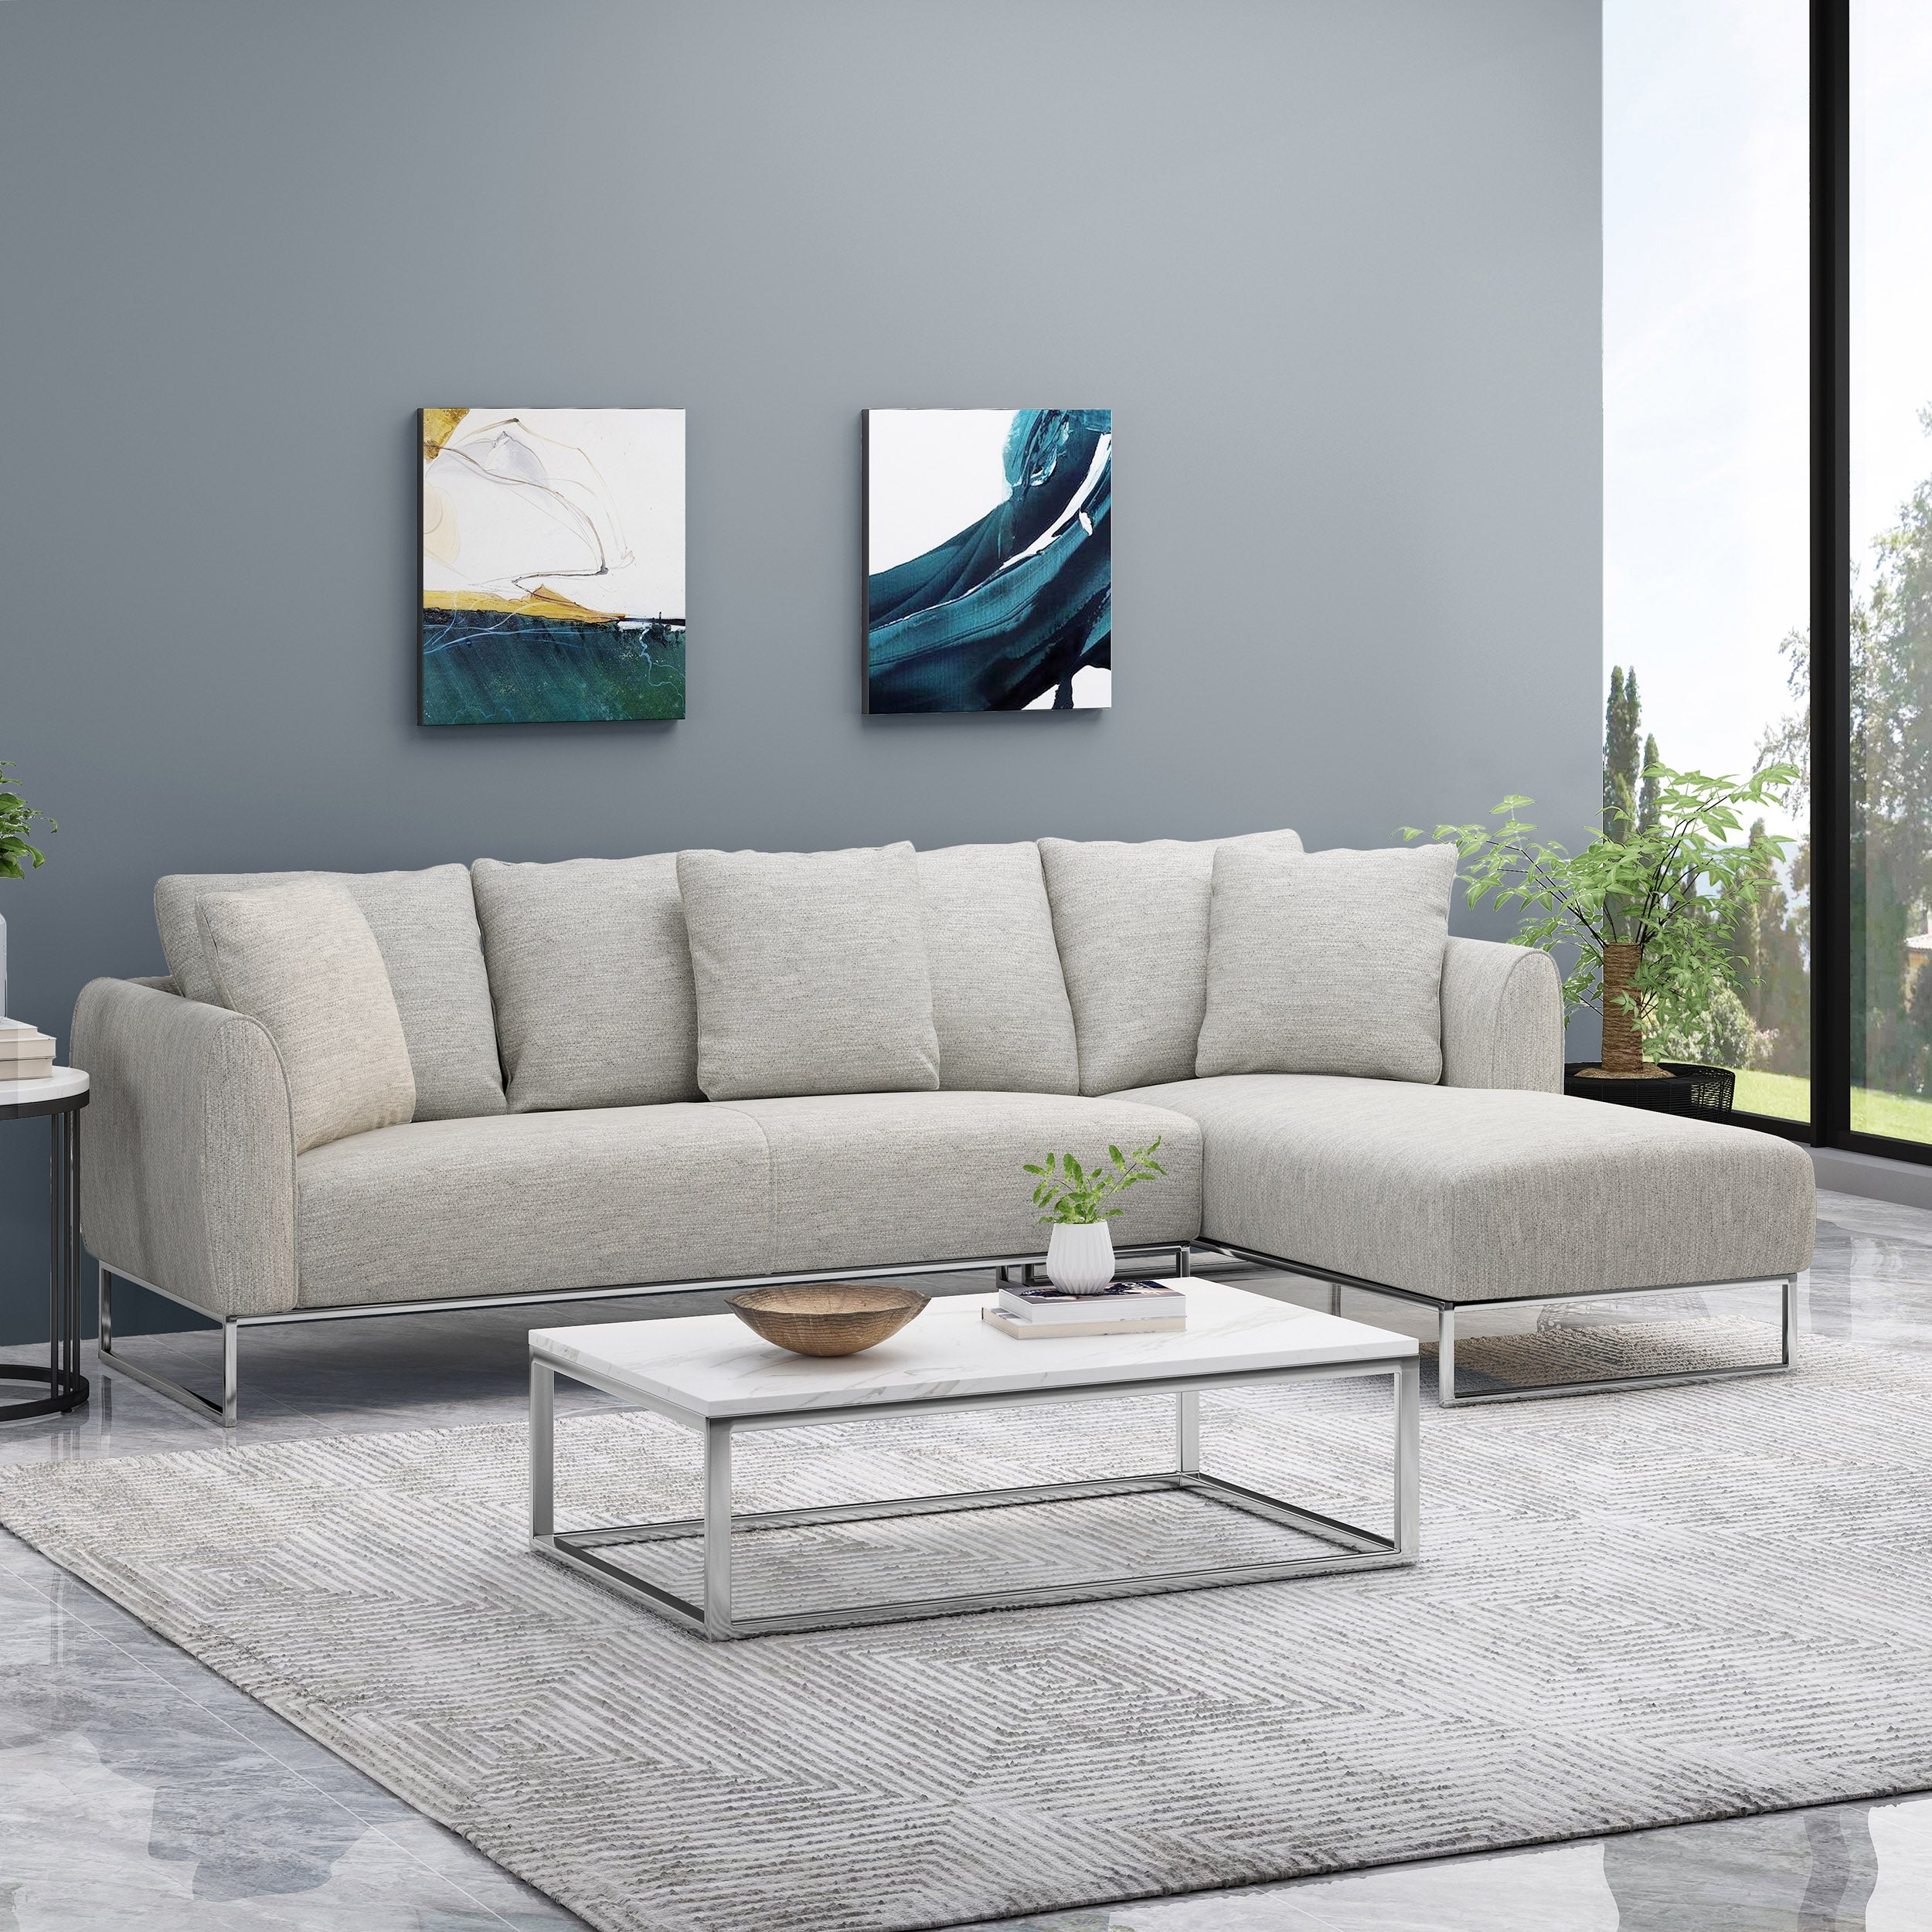 Shop Black Friday Deals On Wetmore Contemporary Sectional Sofa With Chaise Lounge By Christopher Knight Home Overstock 31688211